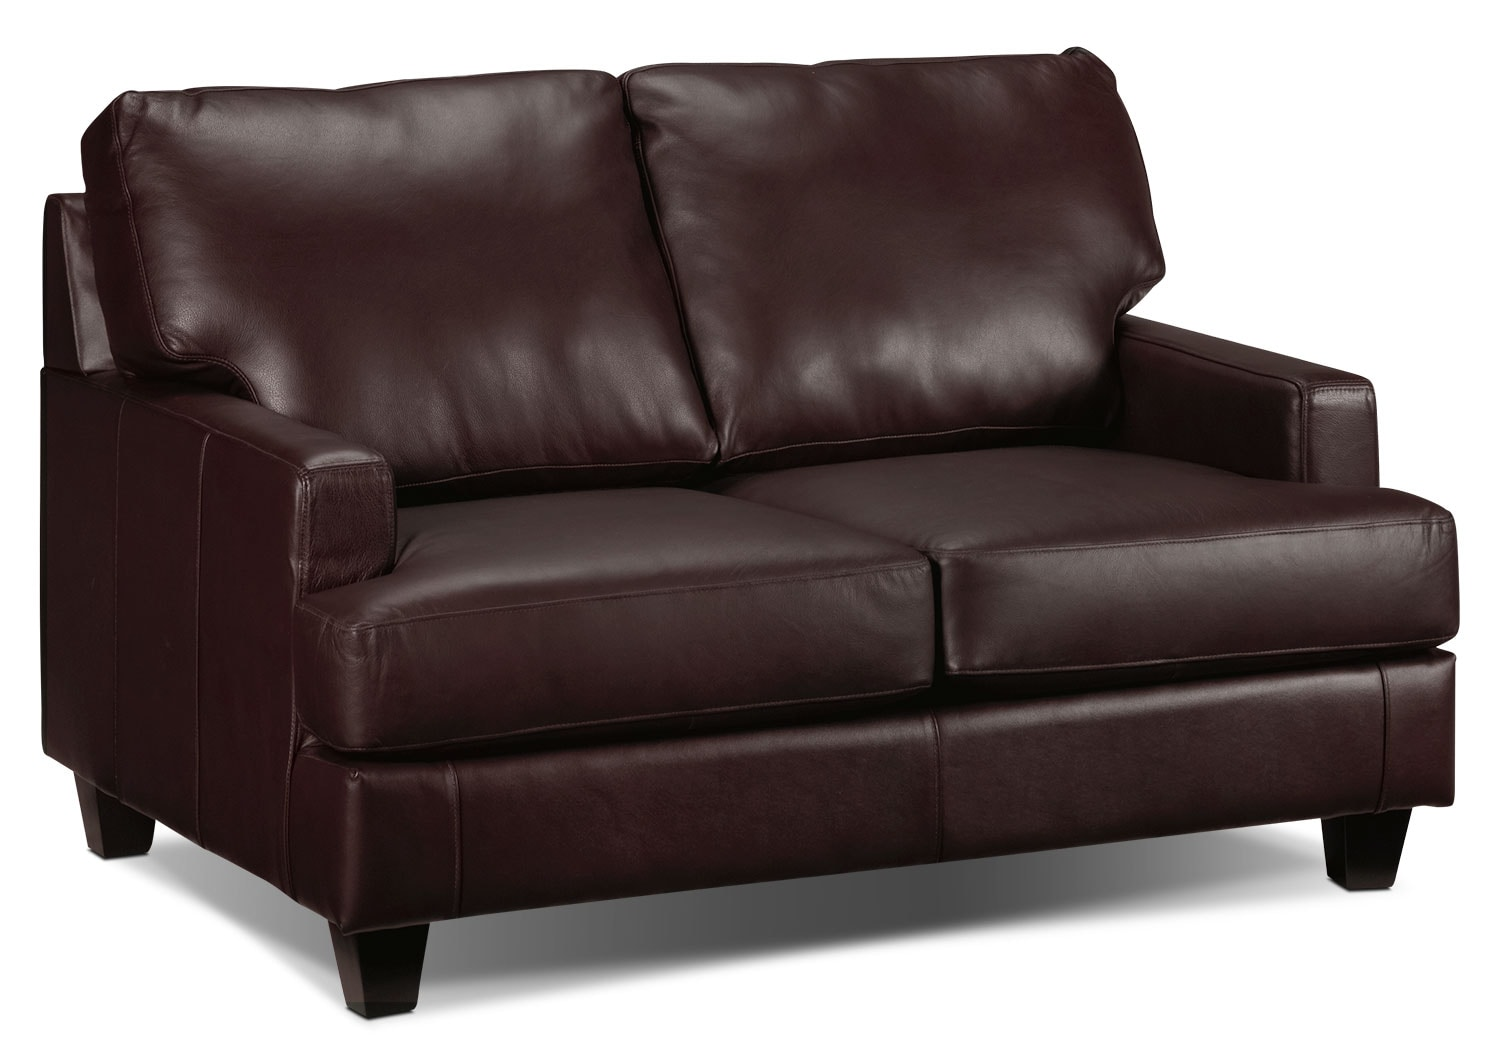 Living Room Furniture - Janie Loveseat - Espresso